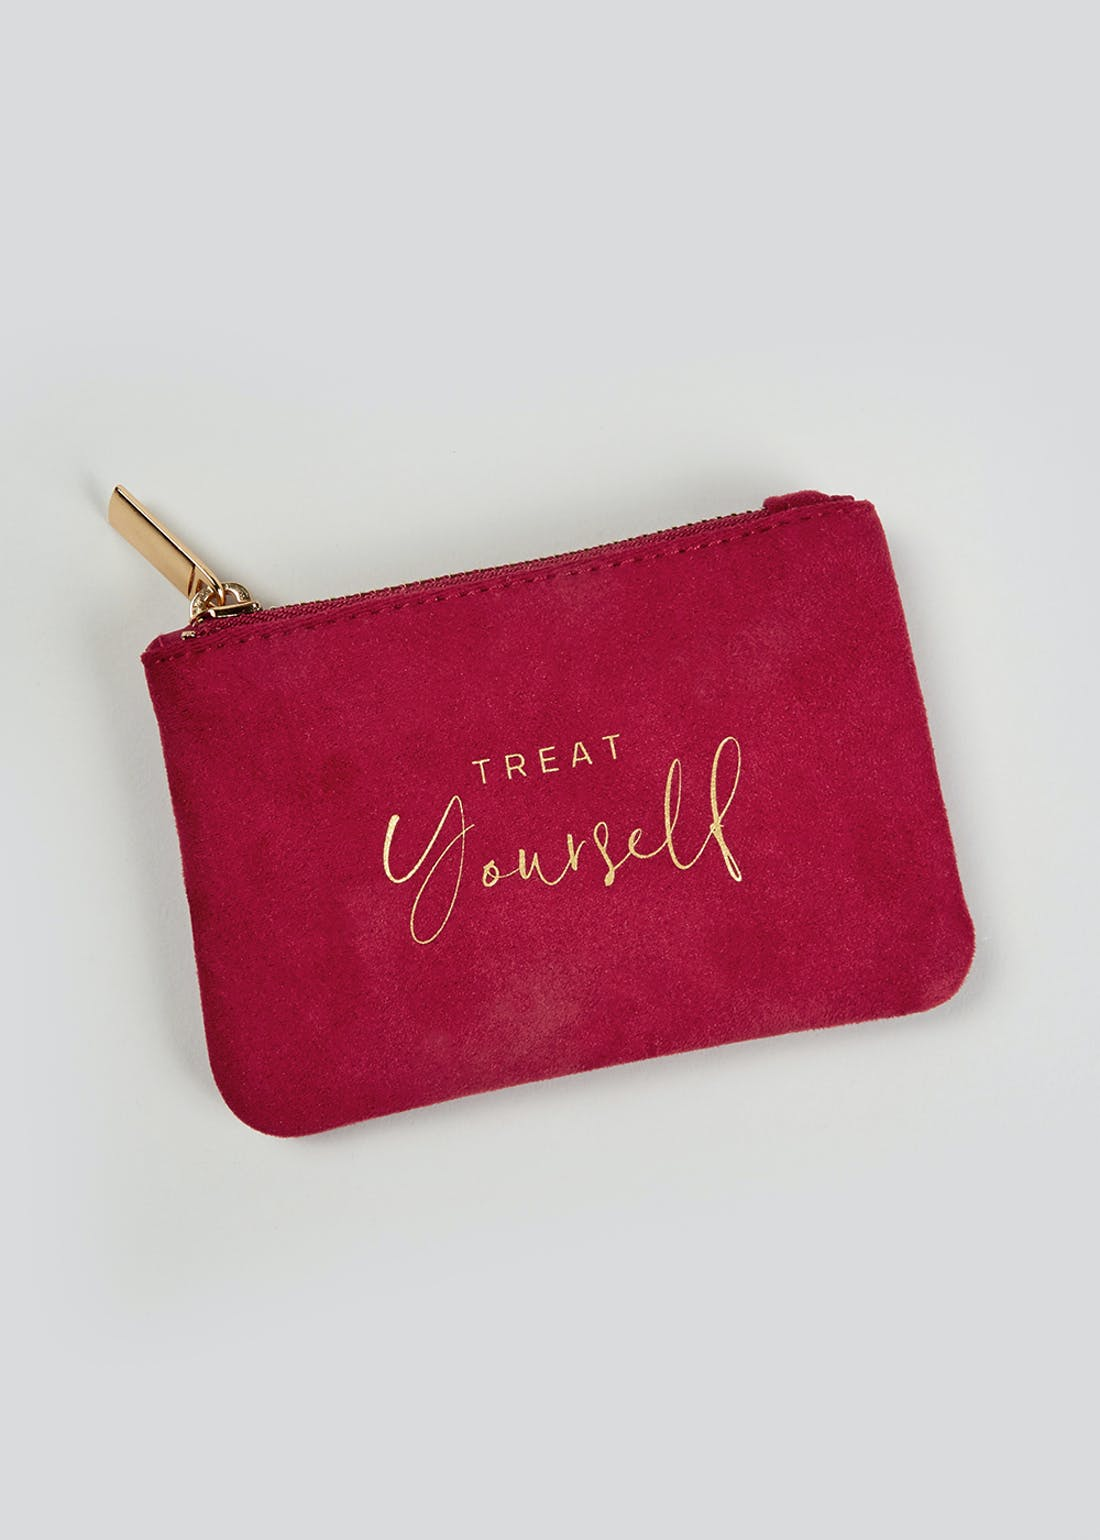 Treat Yourself Purse (12.5cm x 9cm)